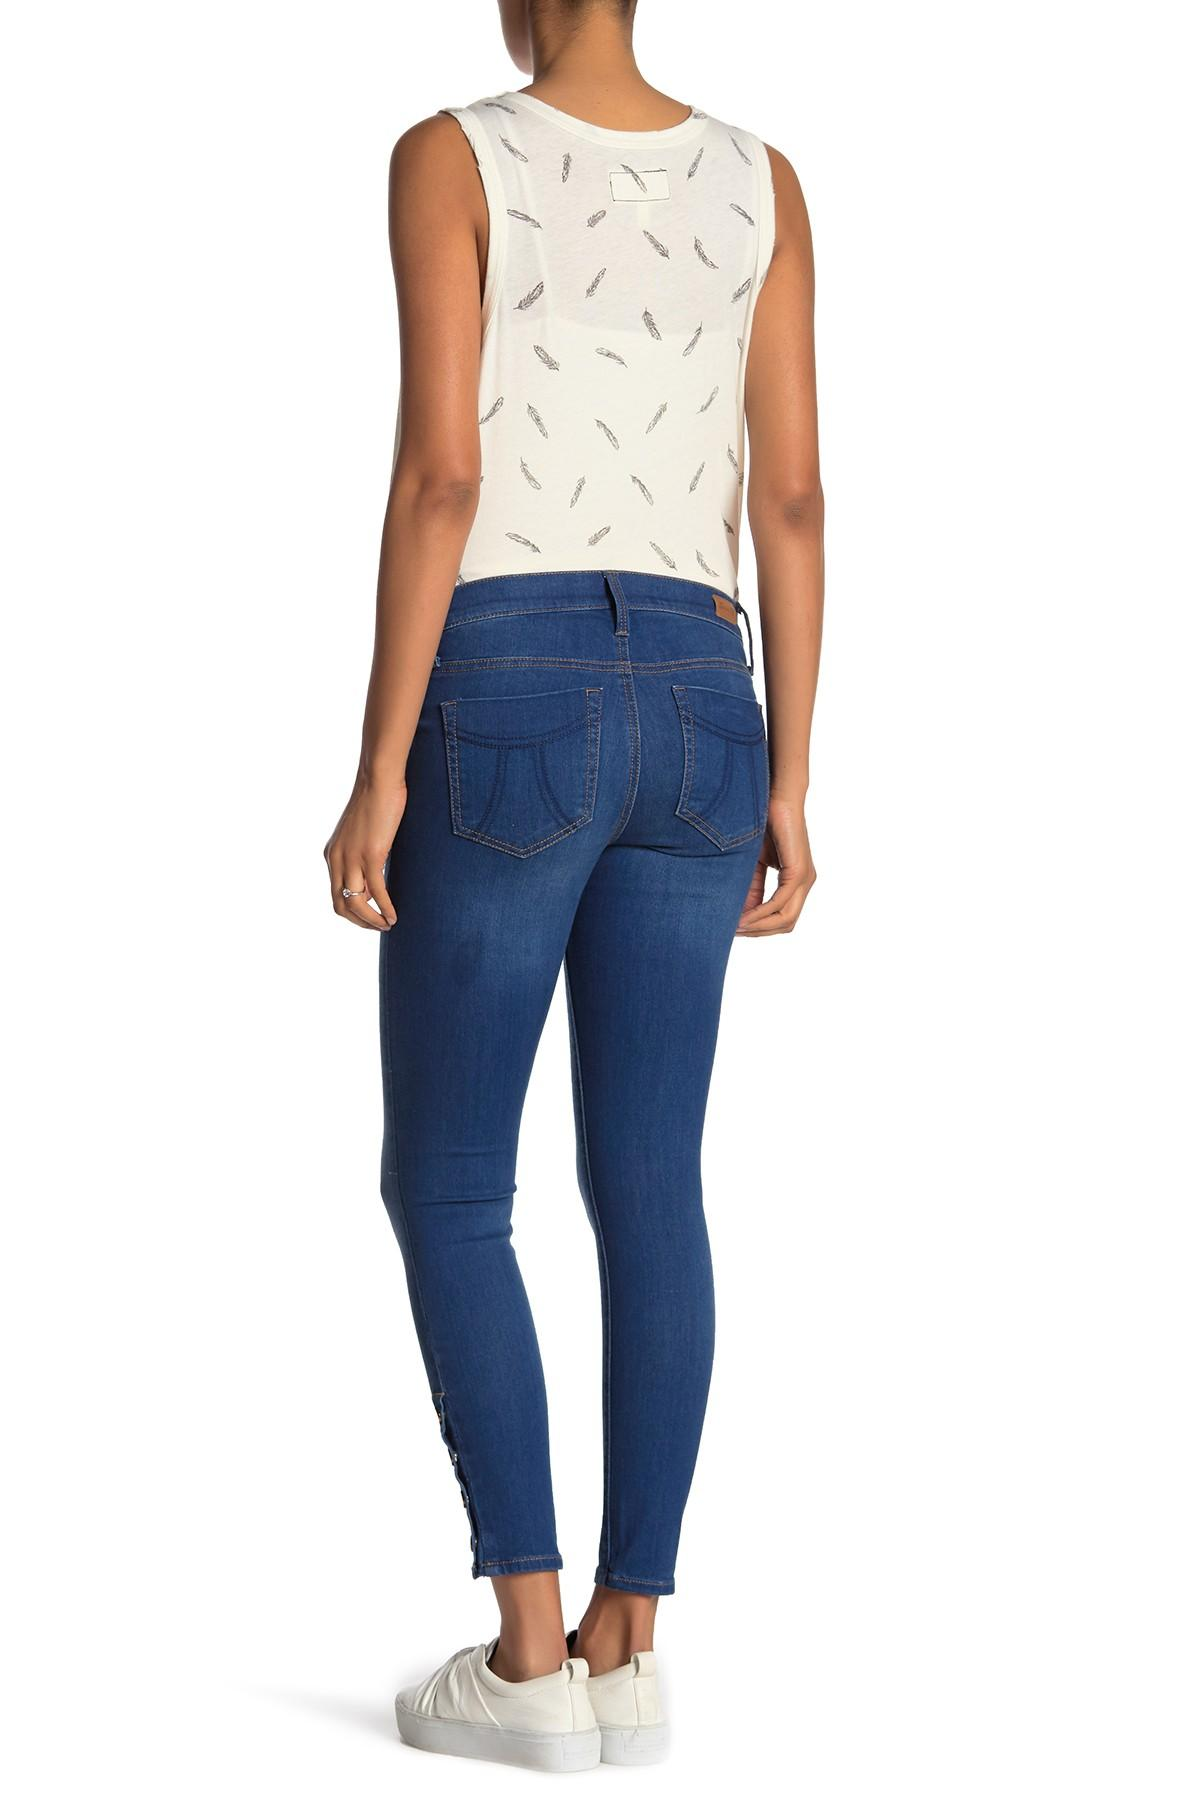 6a92ed921506d Seven7 - Blue Skinny Snap Button Jeans (maternity) - Lyst. View fullscreen